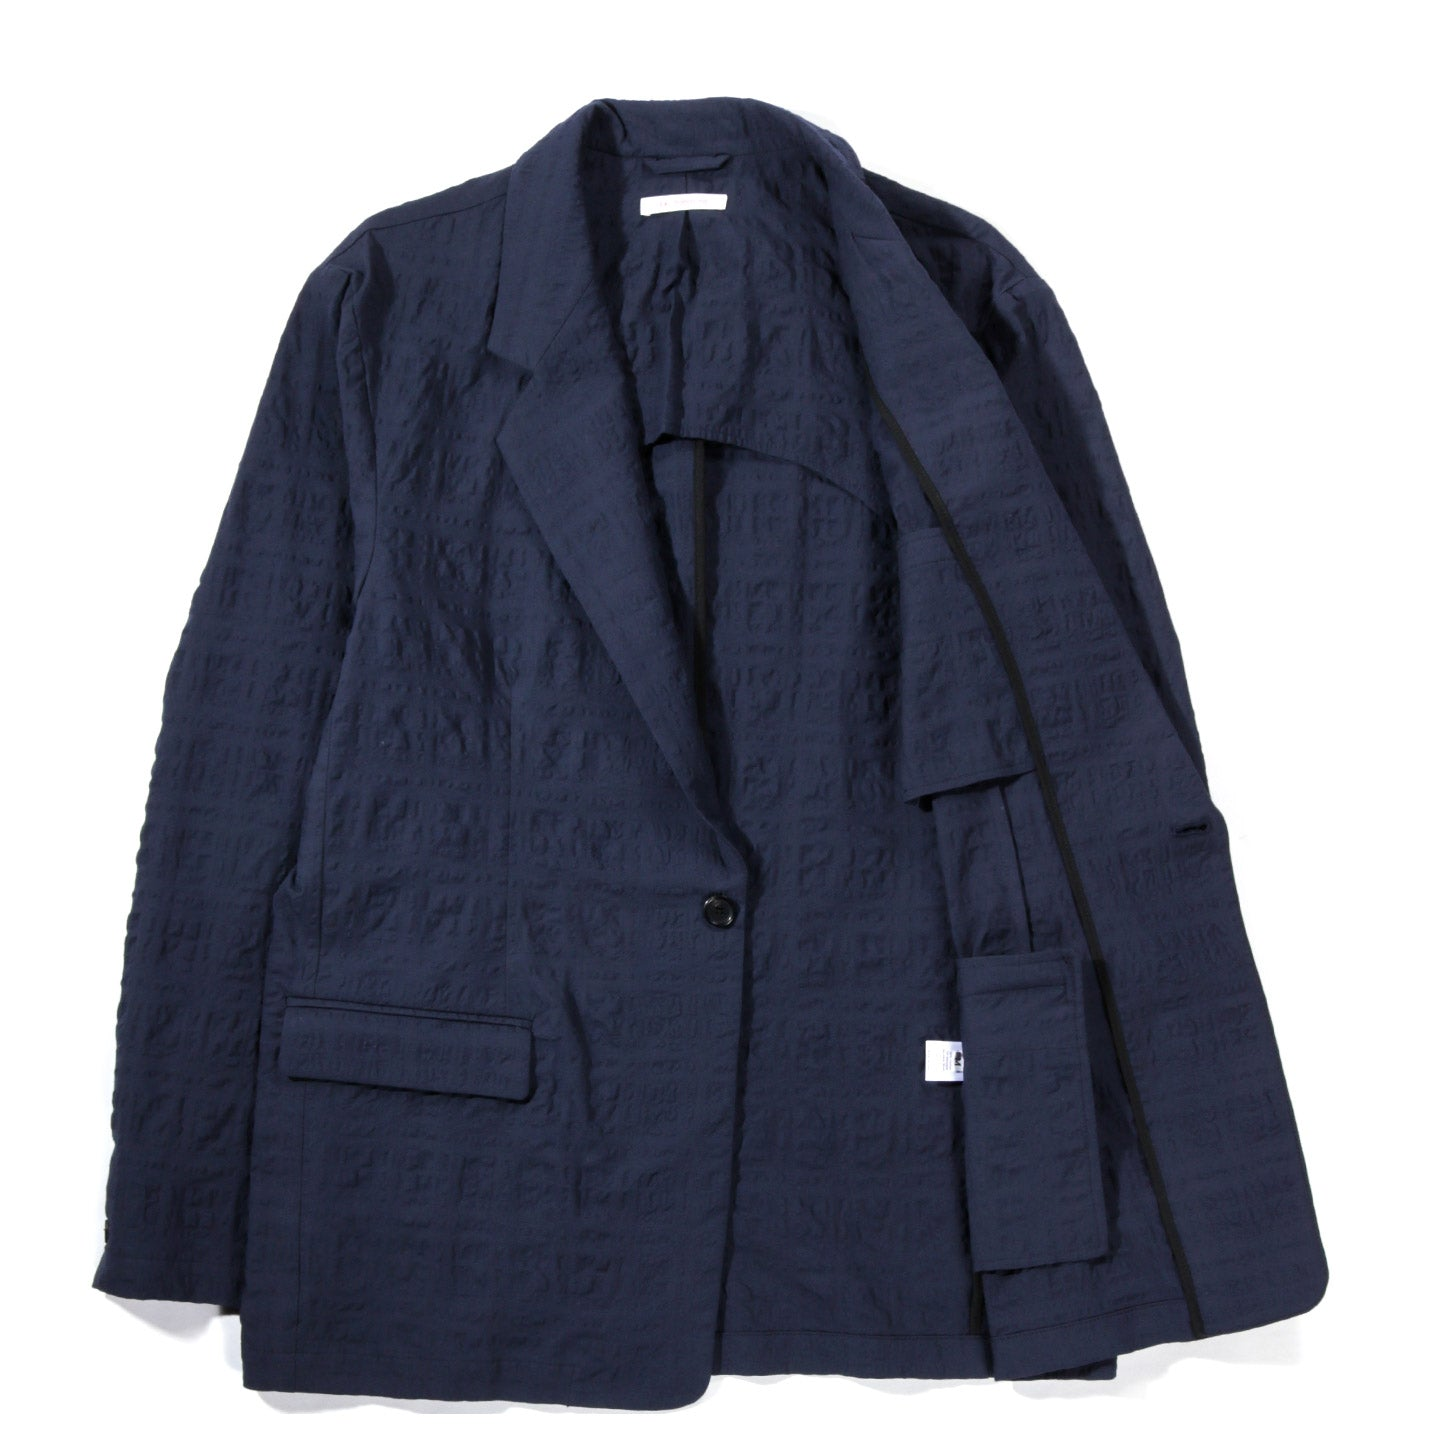 S.K.MANOR HILL JULIAN BLAZER NAVY BLUE PUCKERED